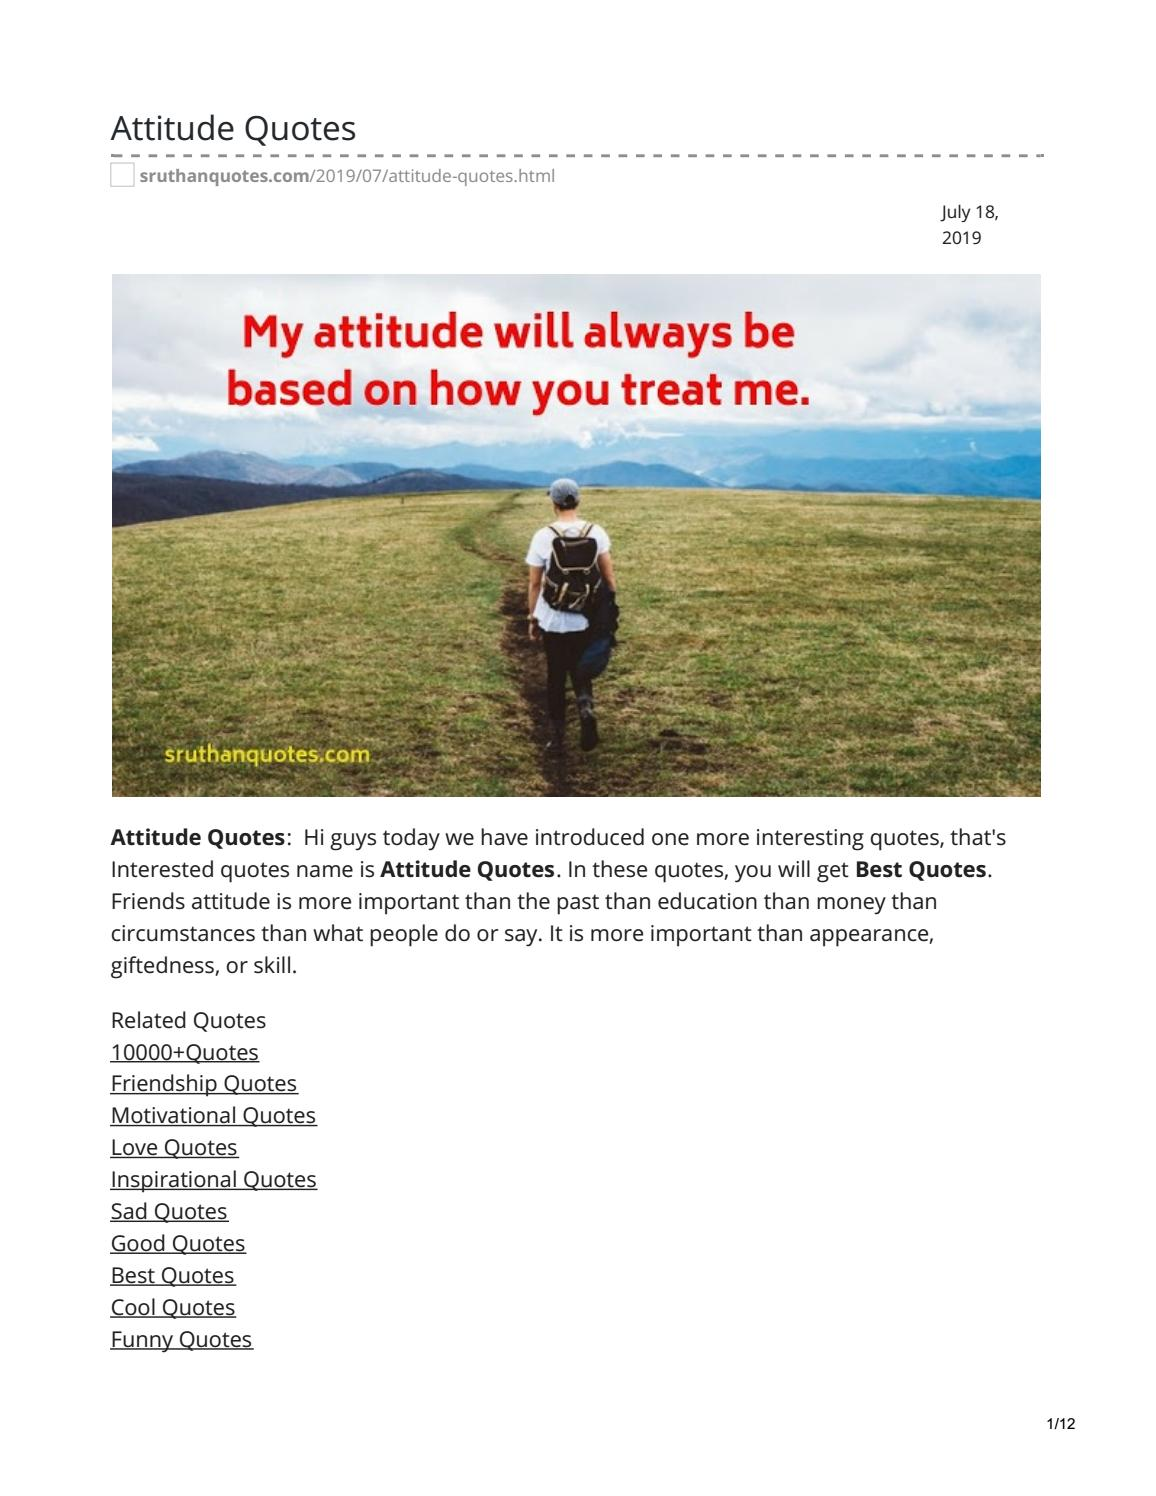 Attitude Quotes By Sruthanquotes Issuu